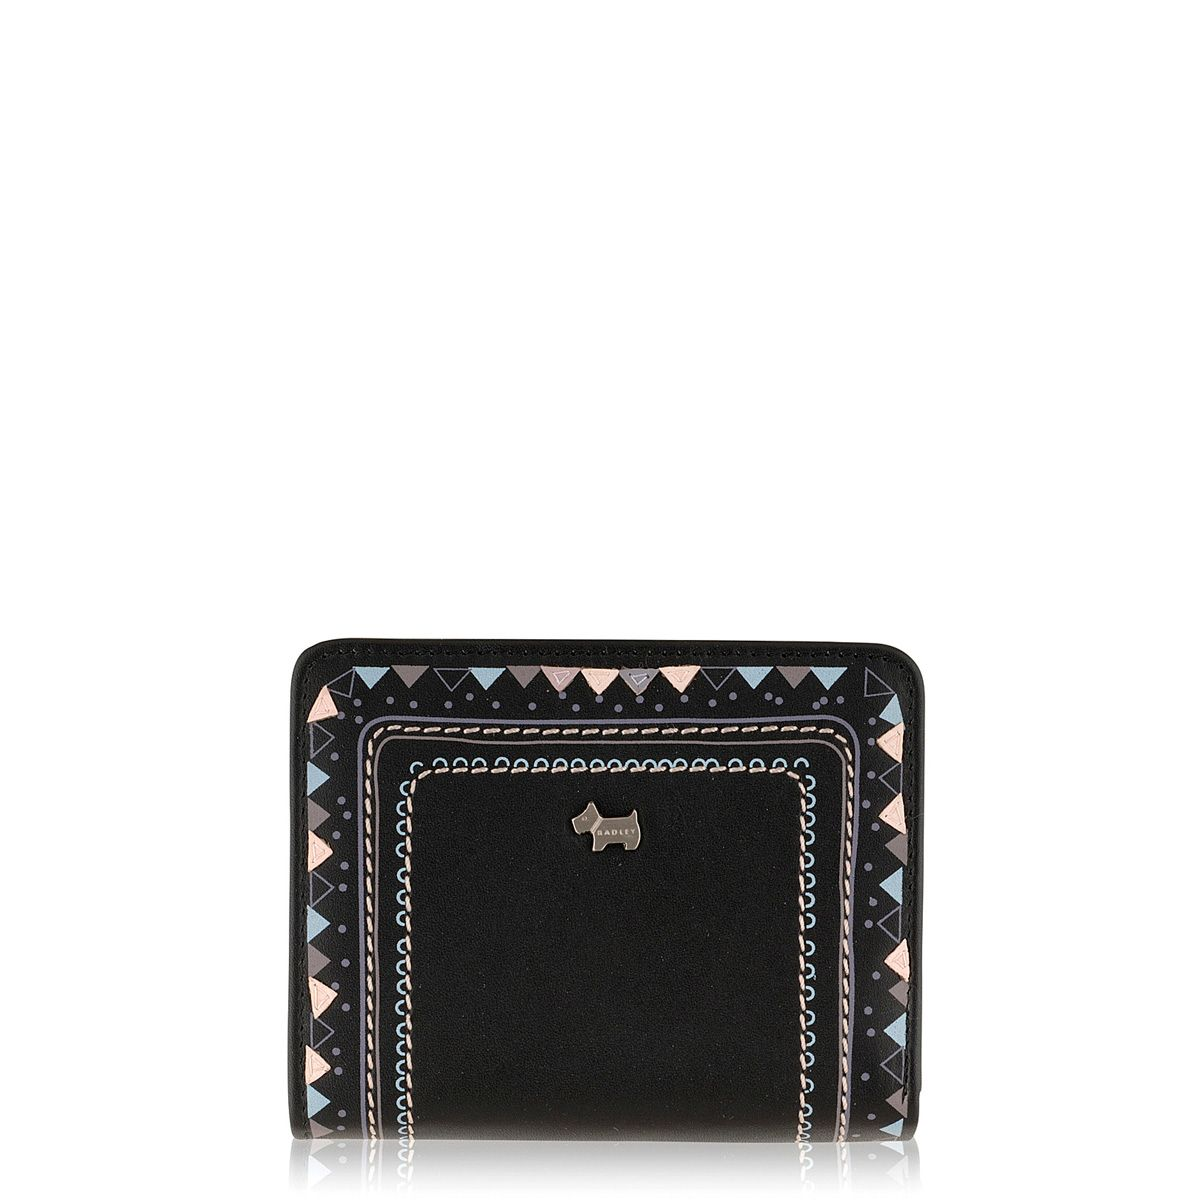 Eyre black medium flapover purse